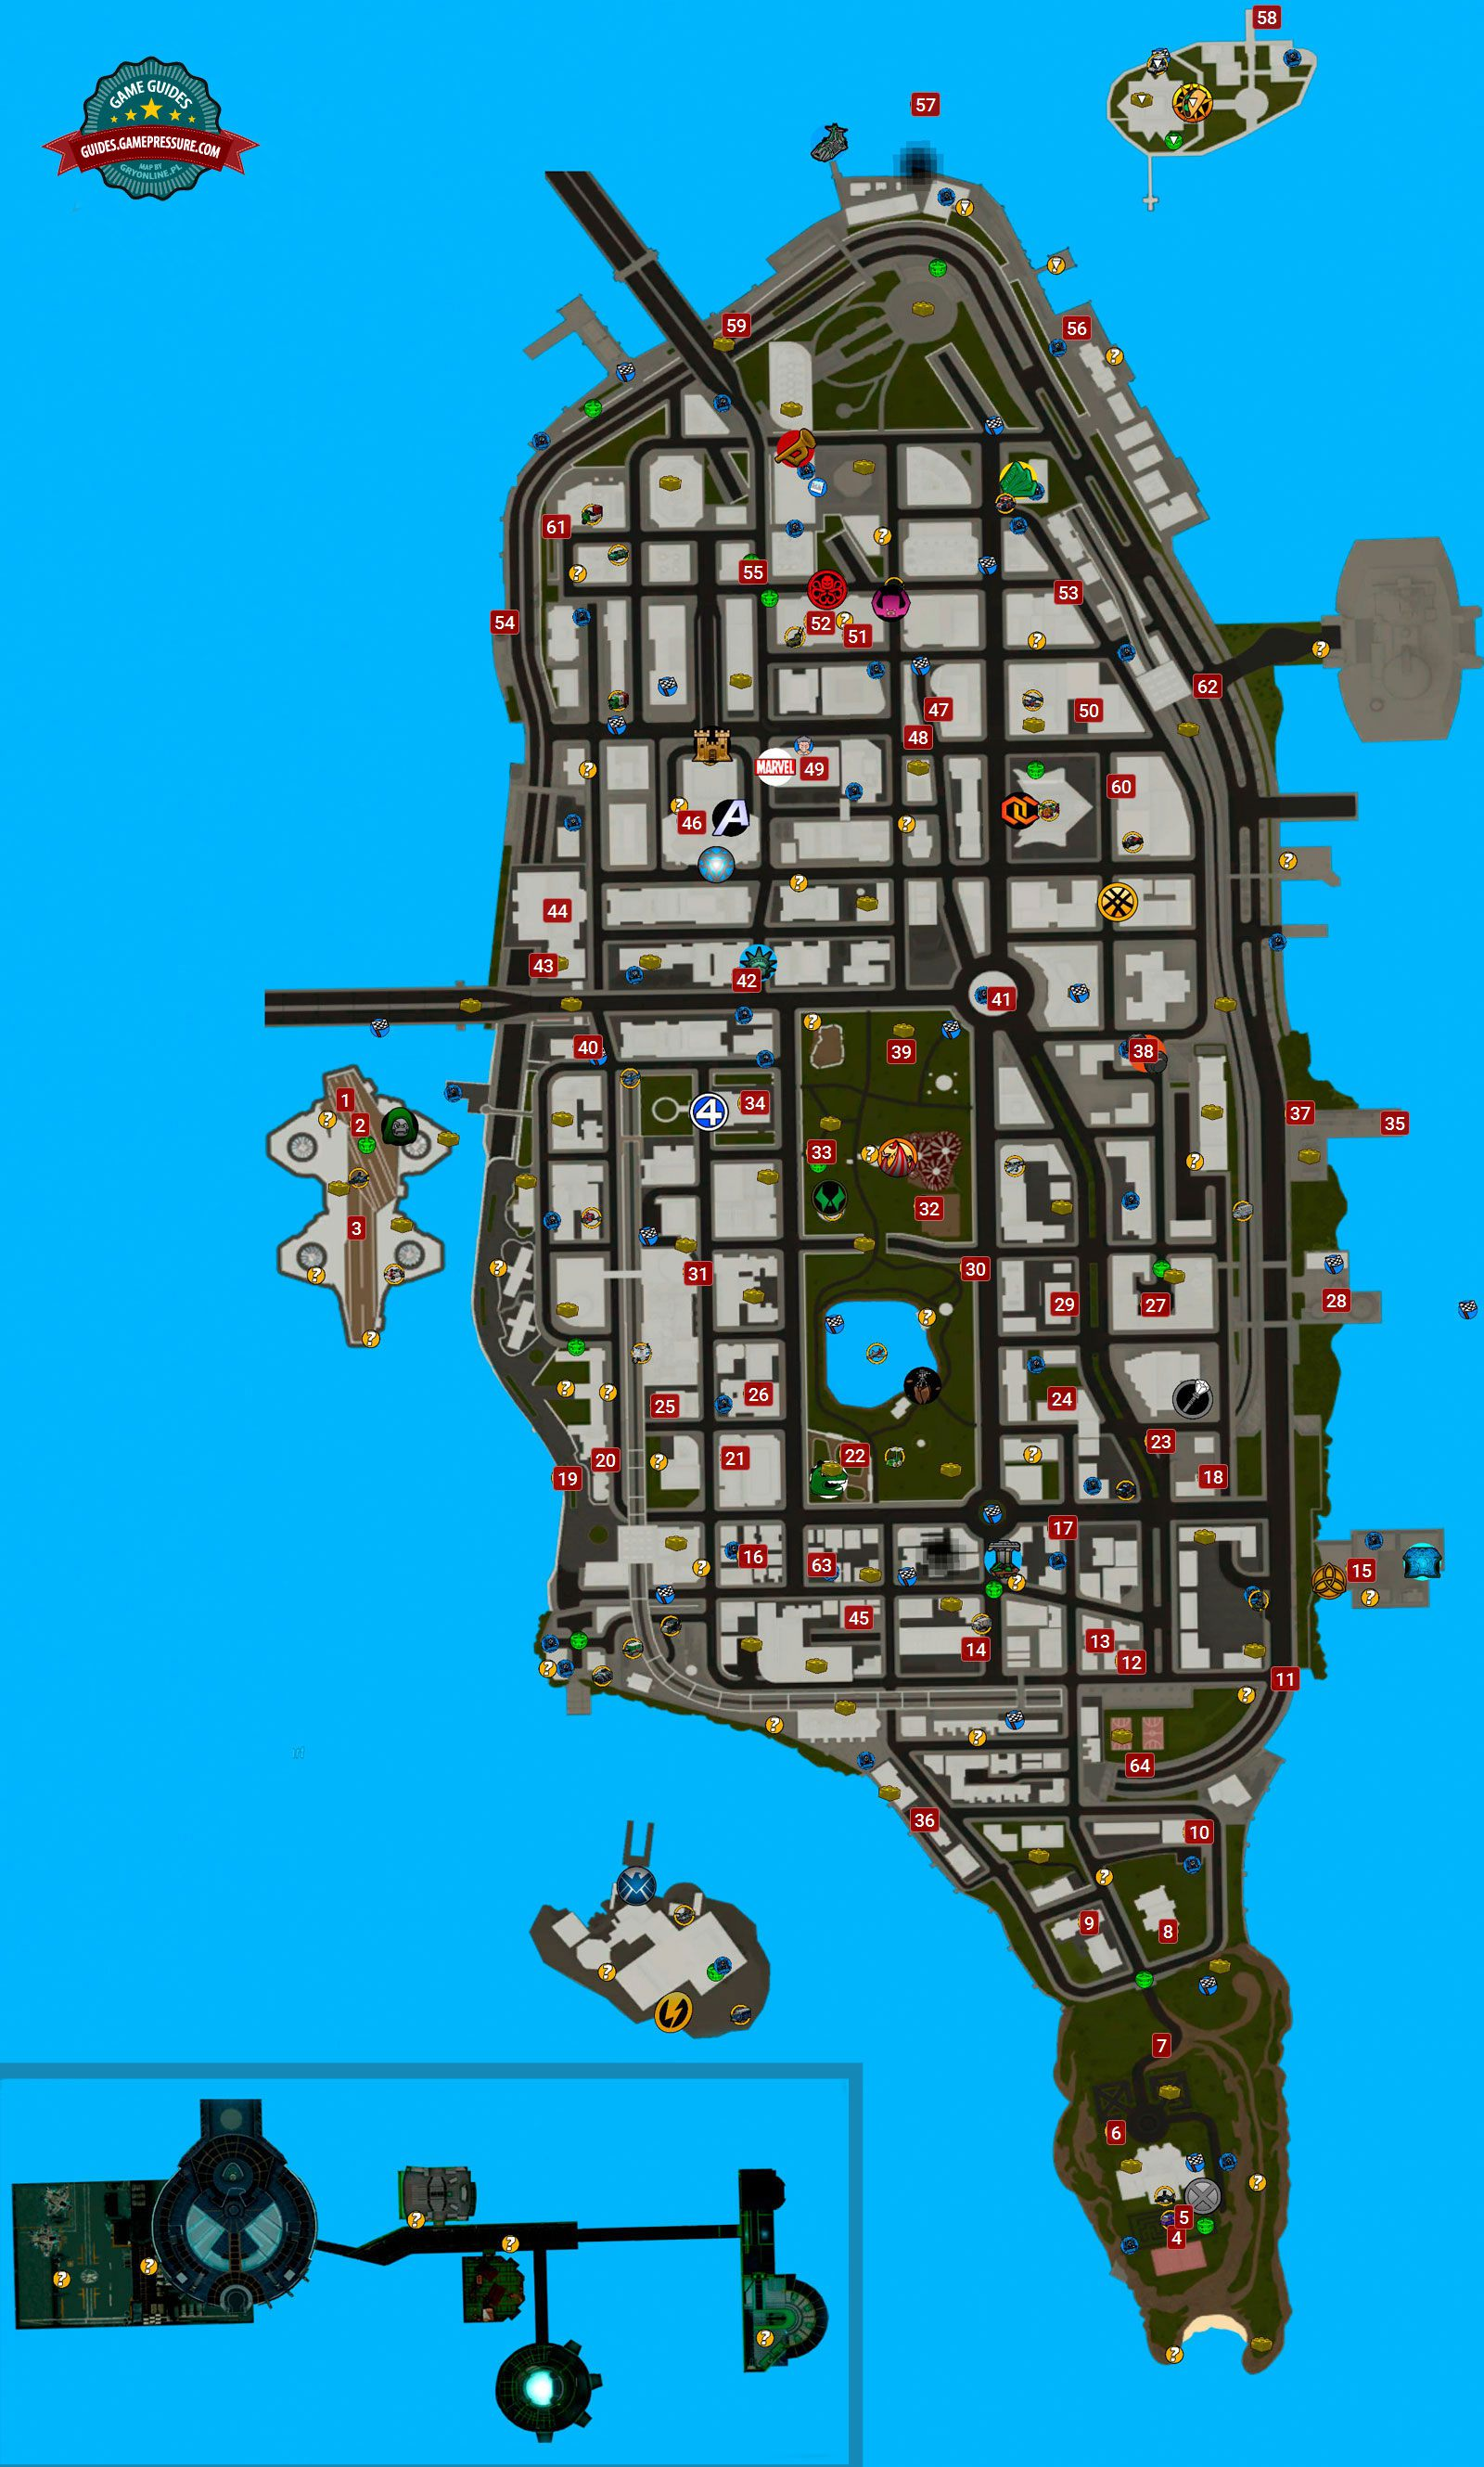 LEGO Marvel Super Heroes Map - Characters